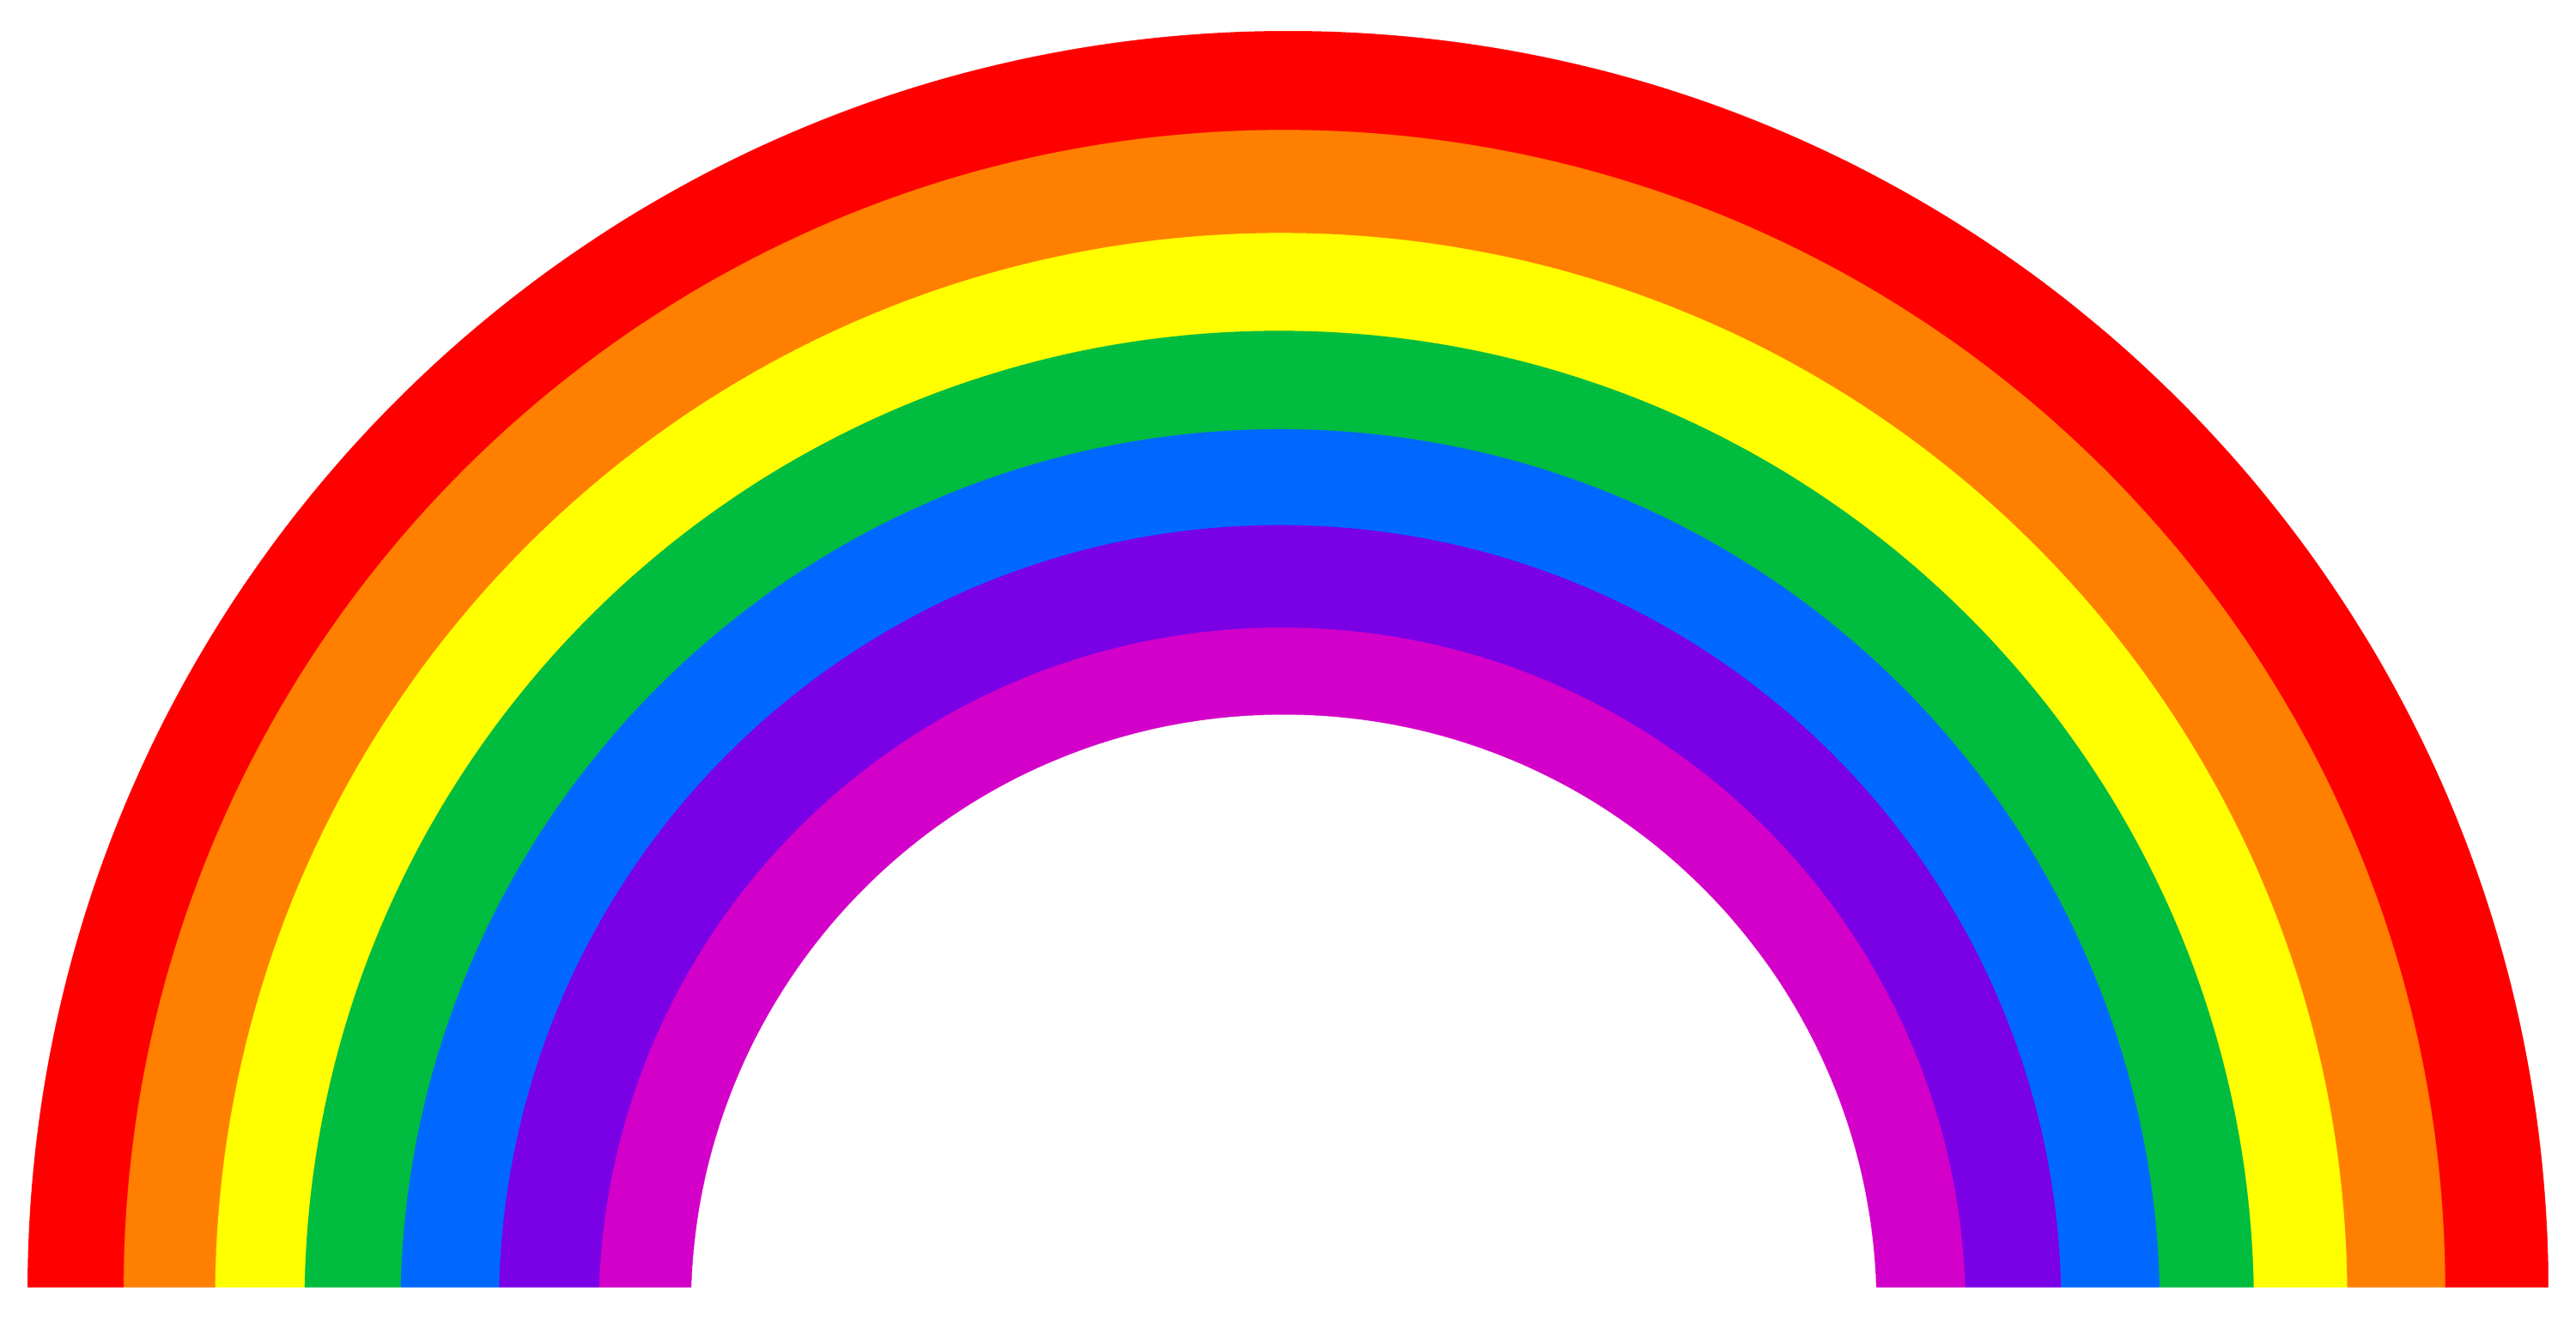 About A New Colour And About How Rainbow Should Have Been